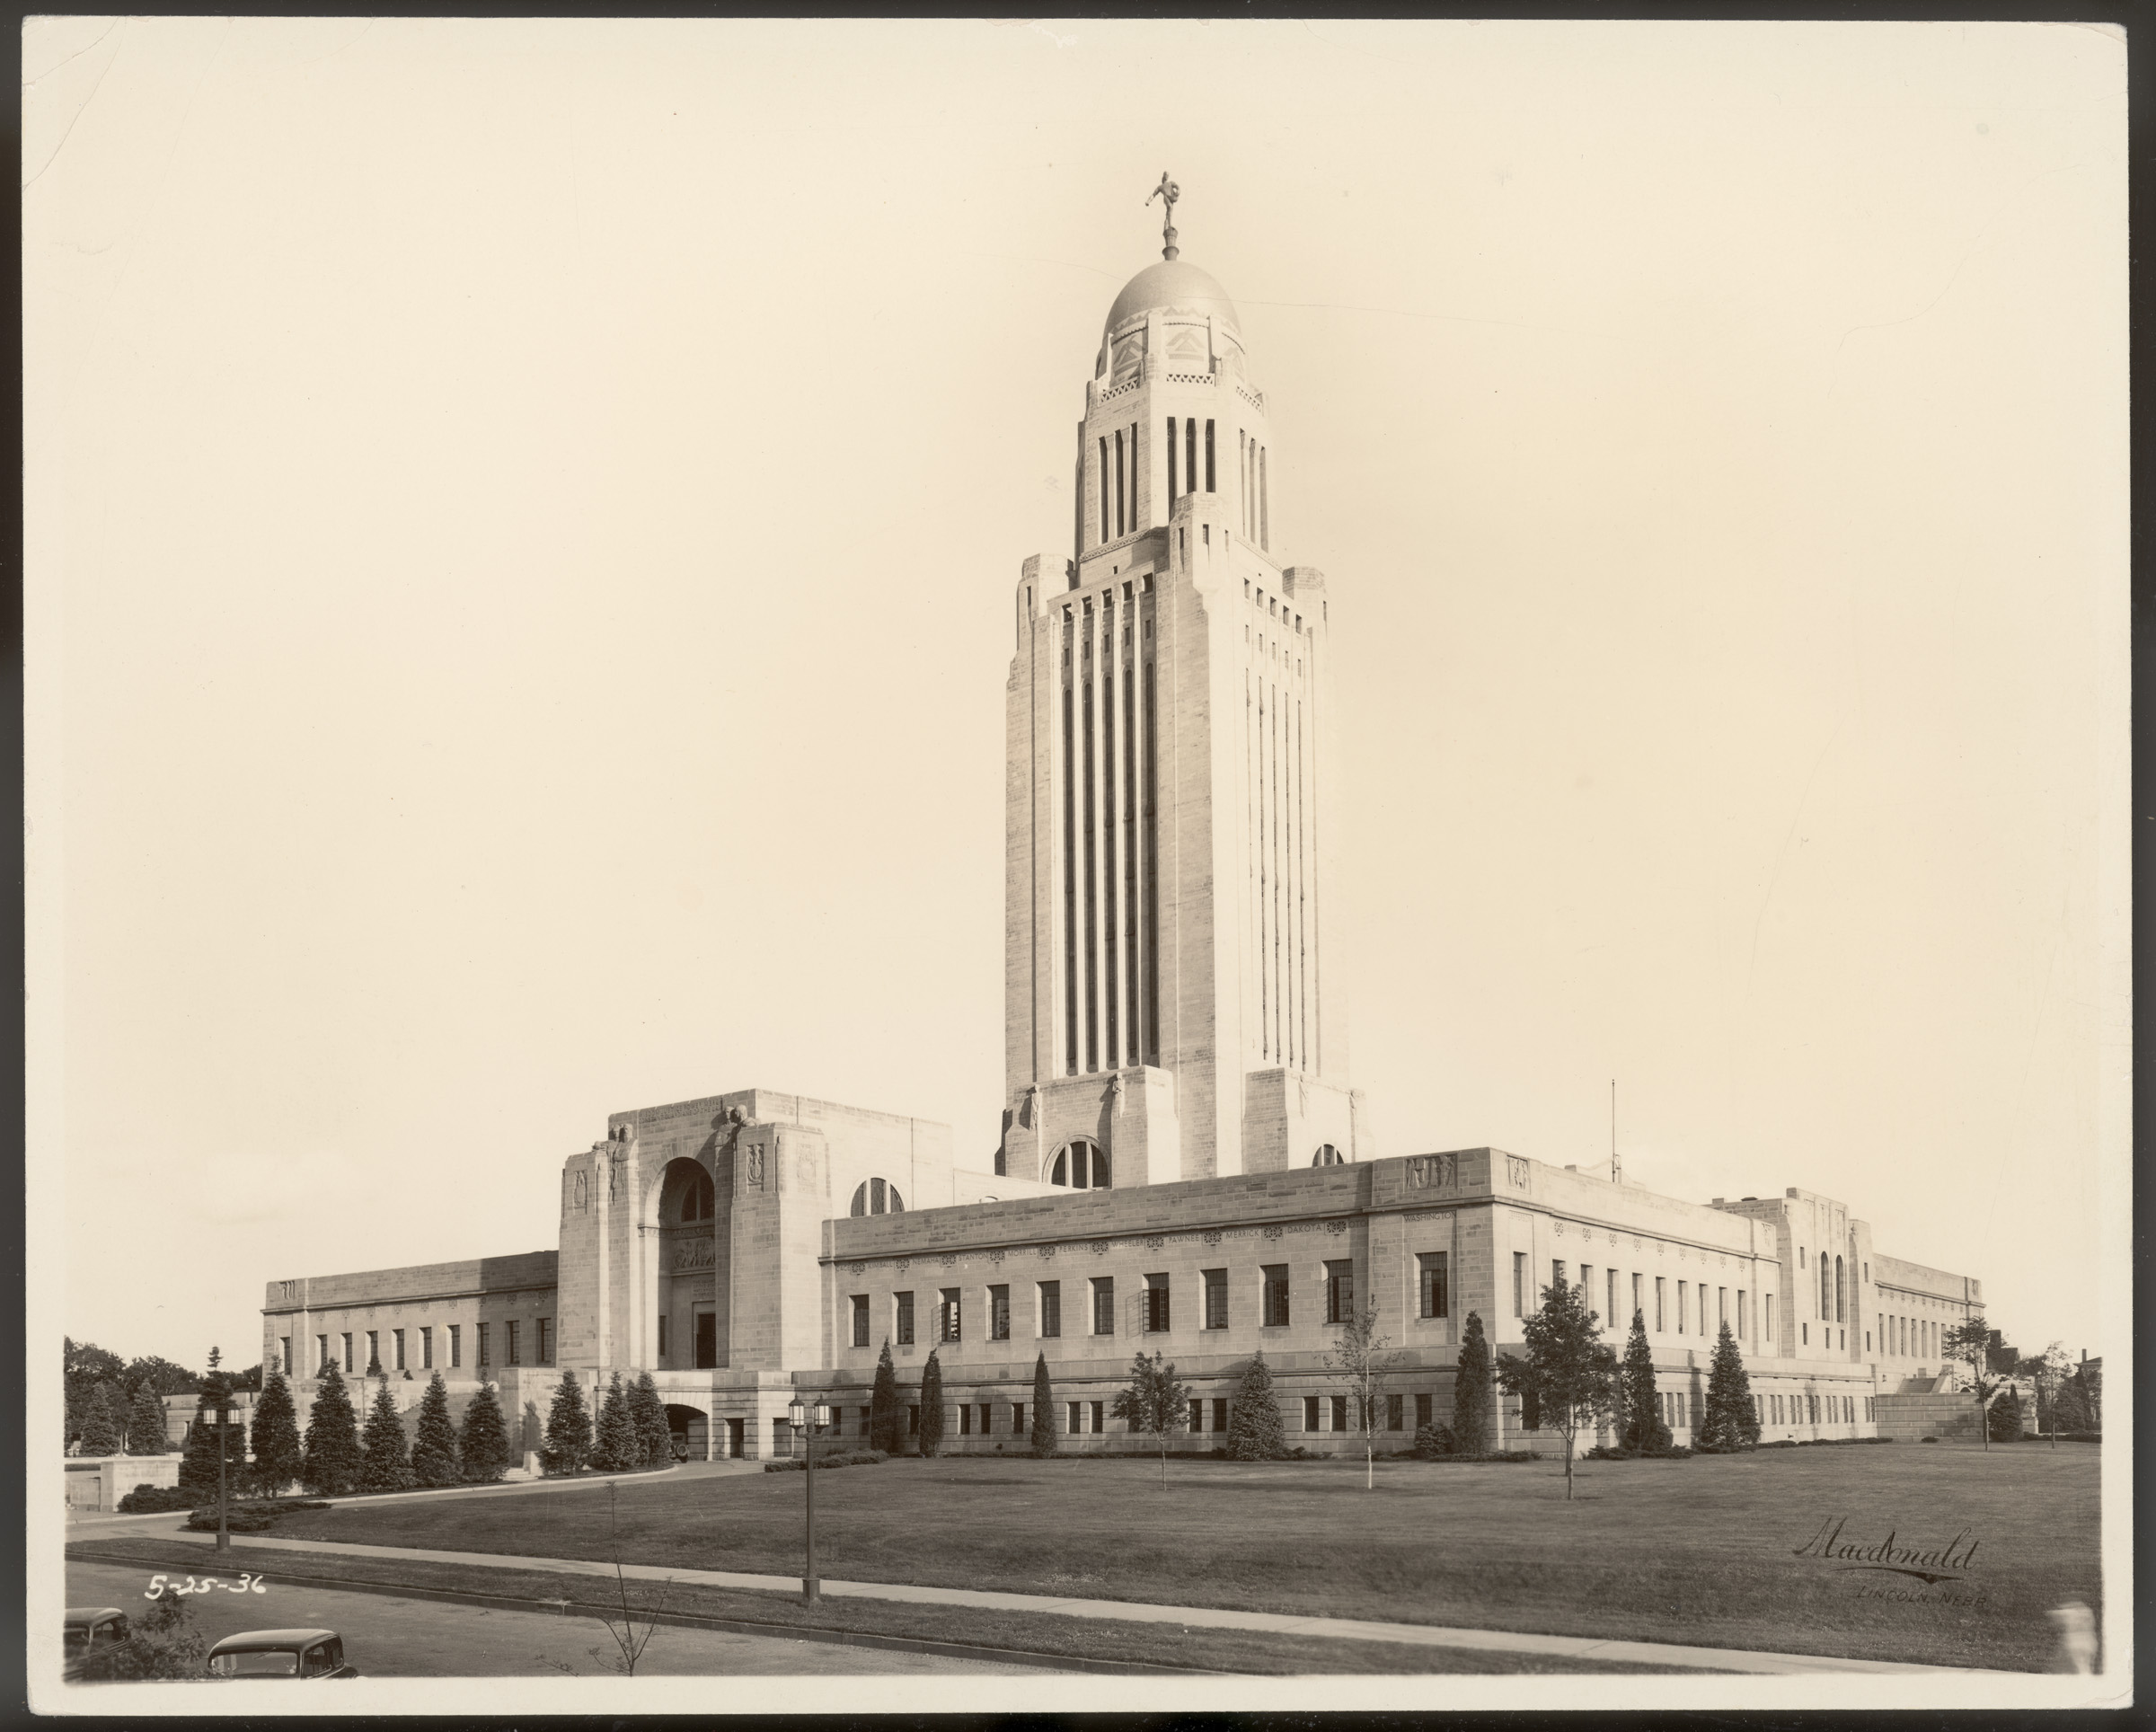 Photograph of the Nebraska State Capitol building.